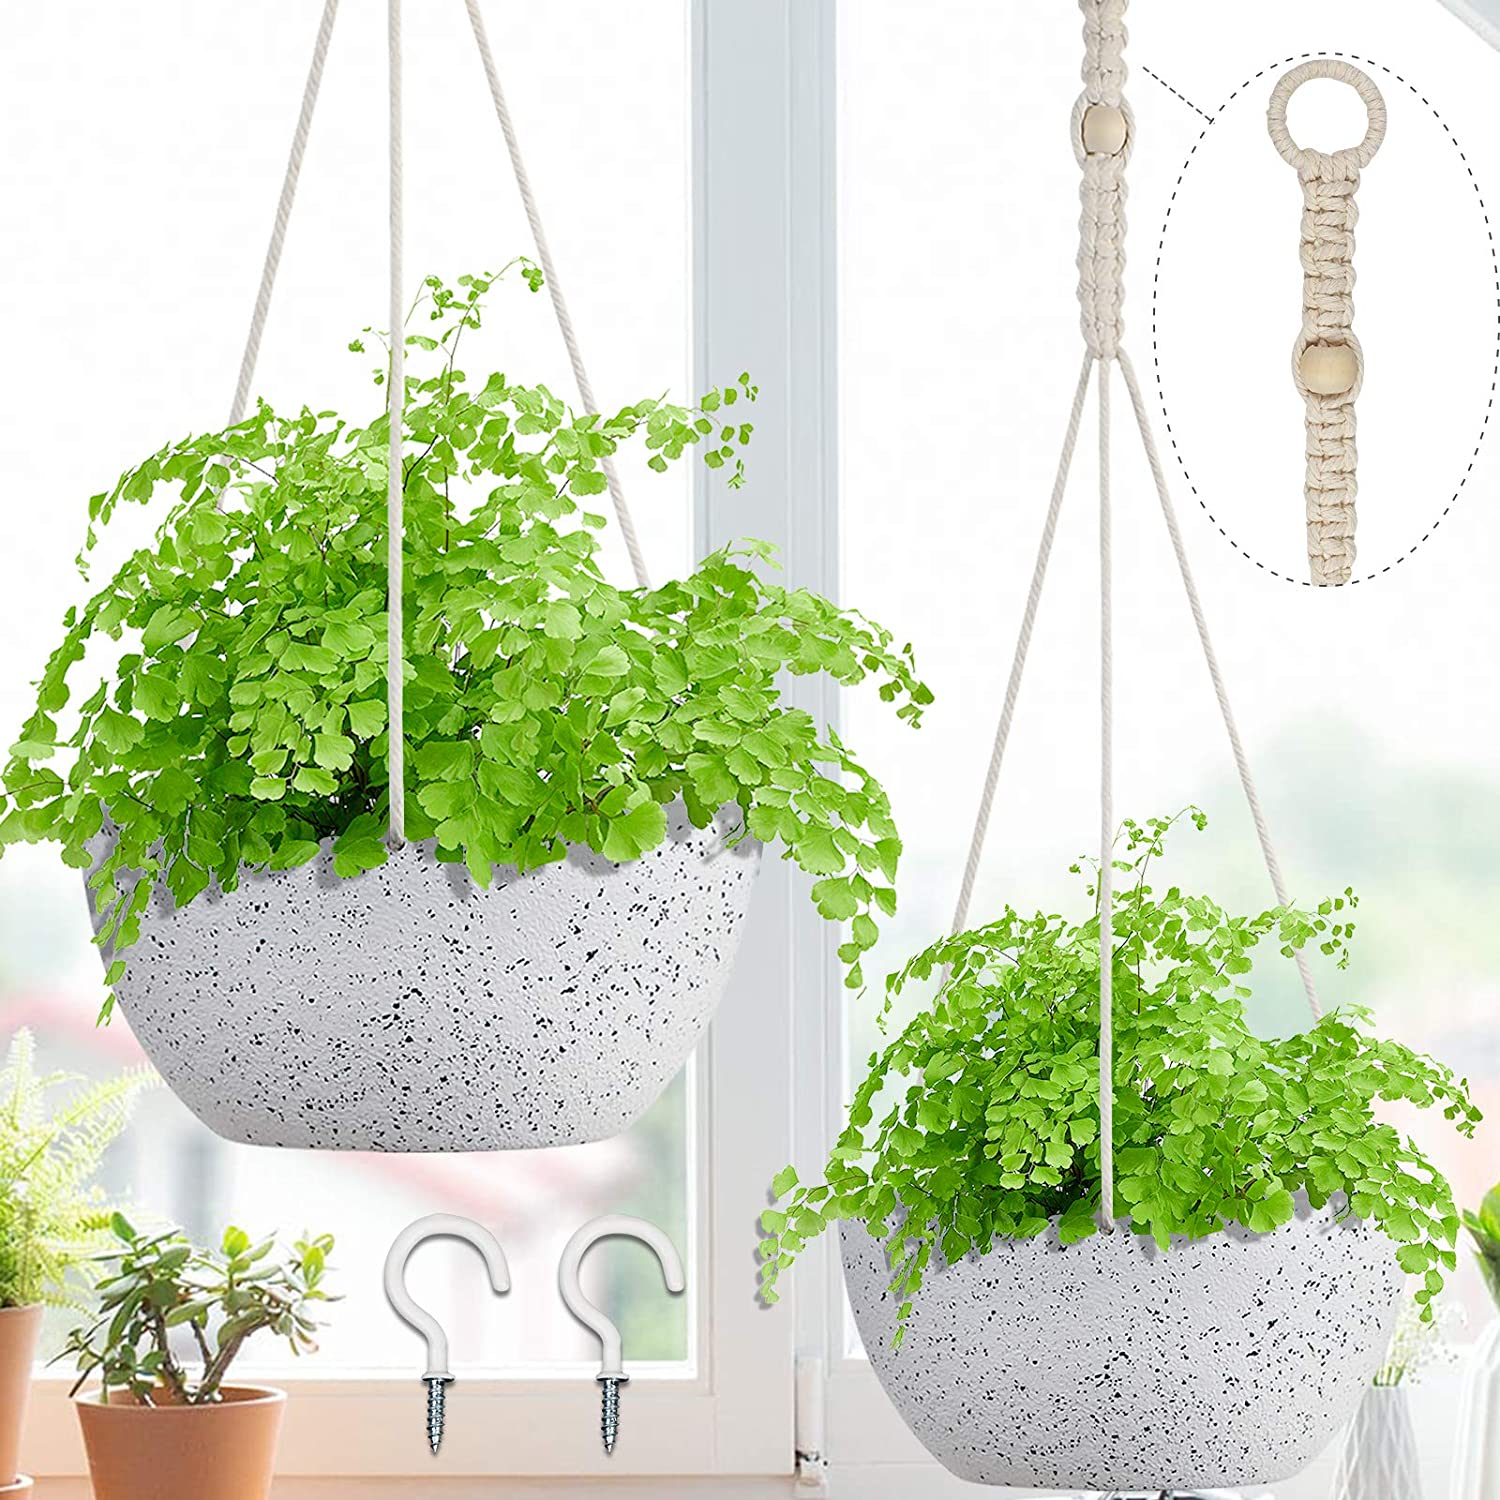 AerWo 2 Pack Hanging Max Sales results No. 1 78% OFF Planters for 8 Plants Indoor Outdoor Inch